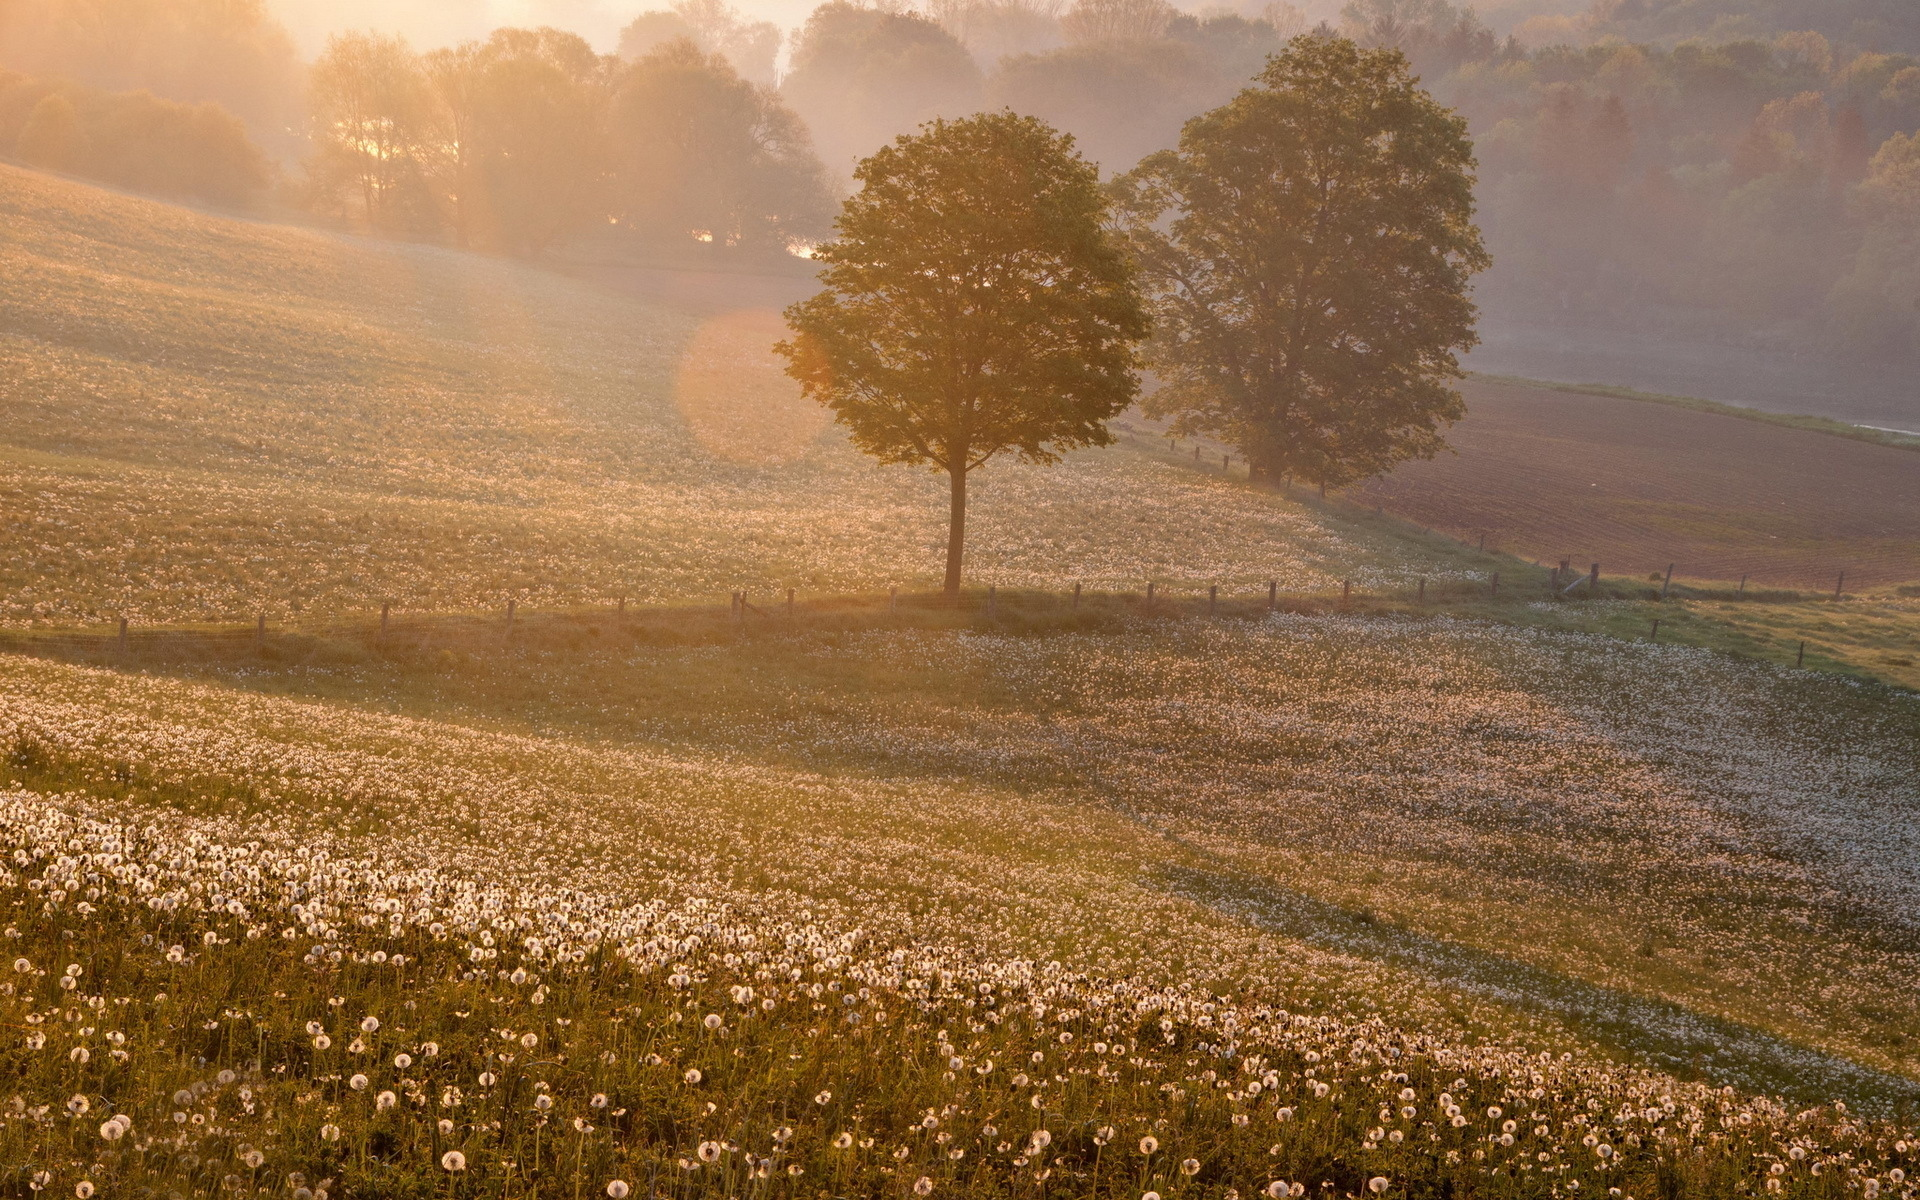 Earth - Landscape  - Scenic - Field - Flower - Tree - Fog - Mist - Morning - Sunrise - Forest Wallpaper